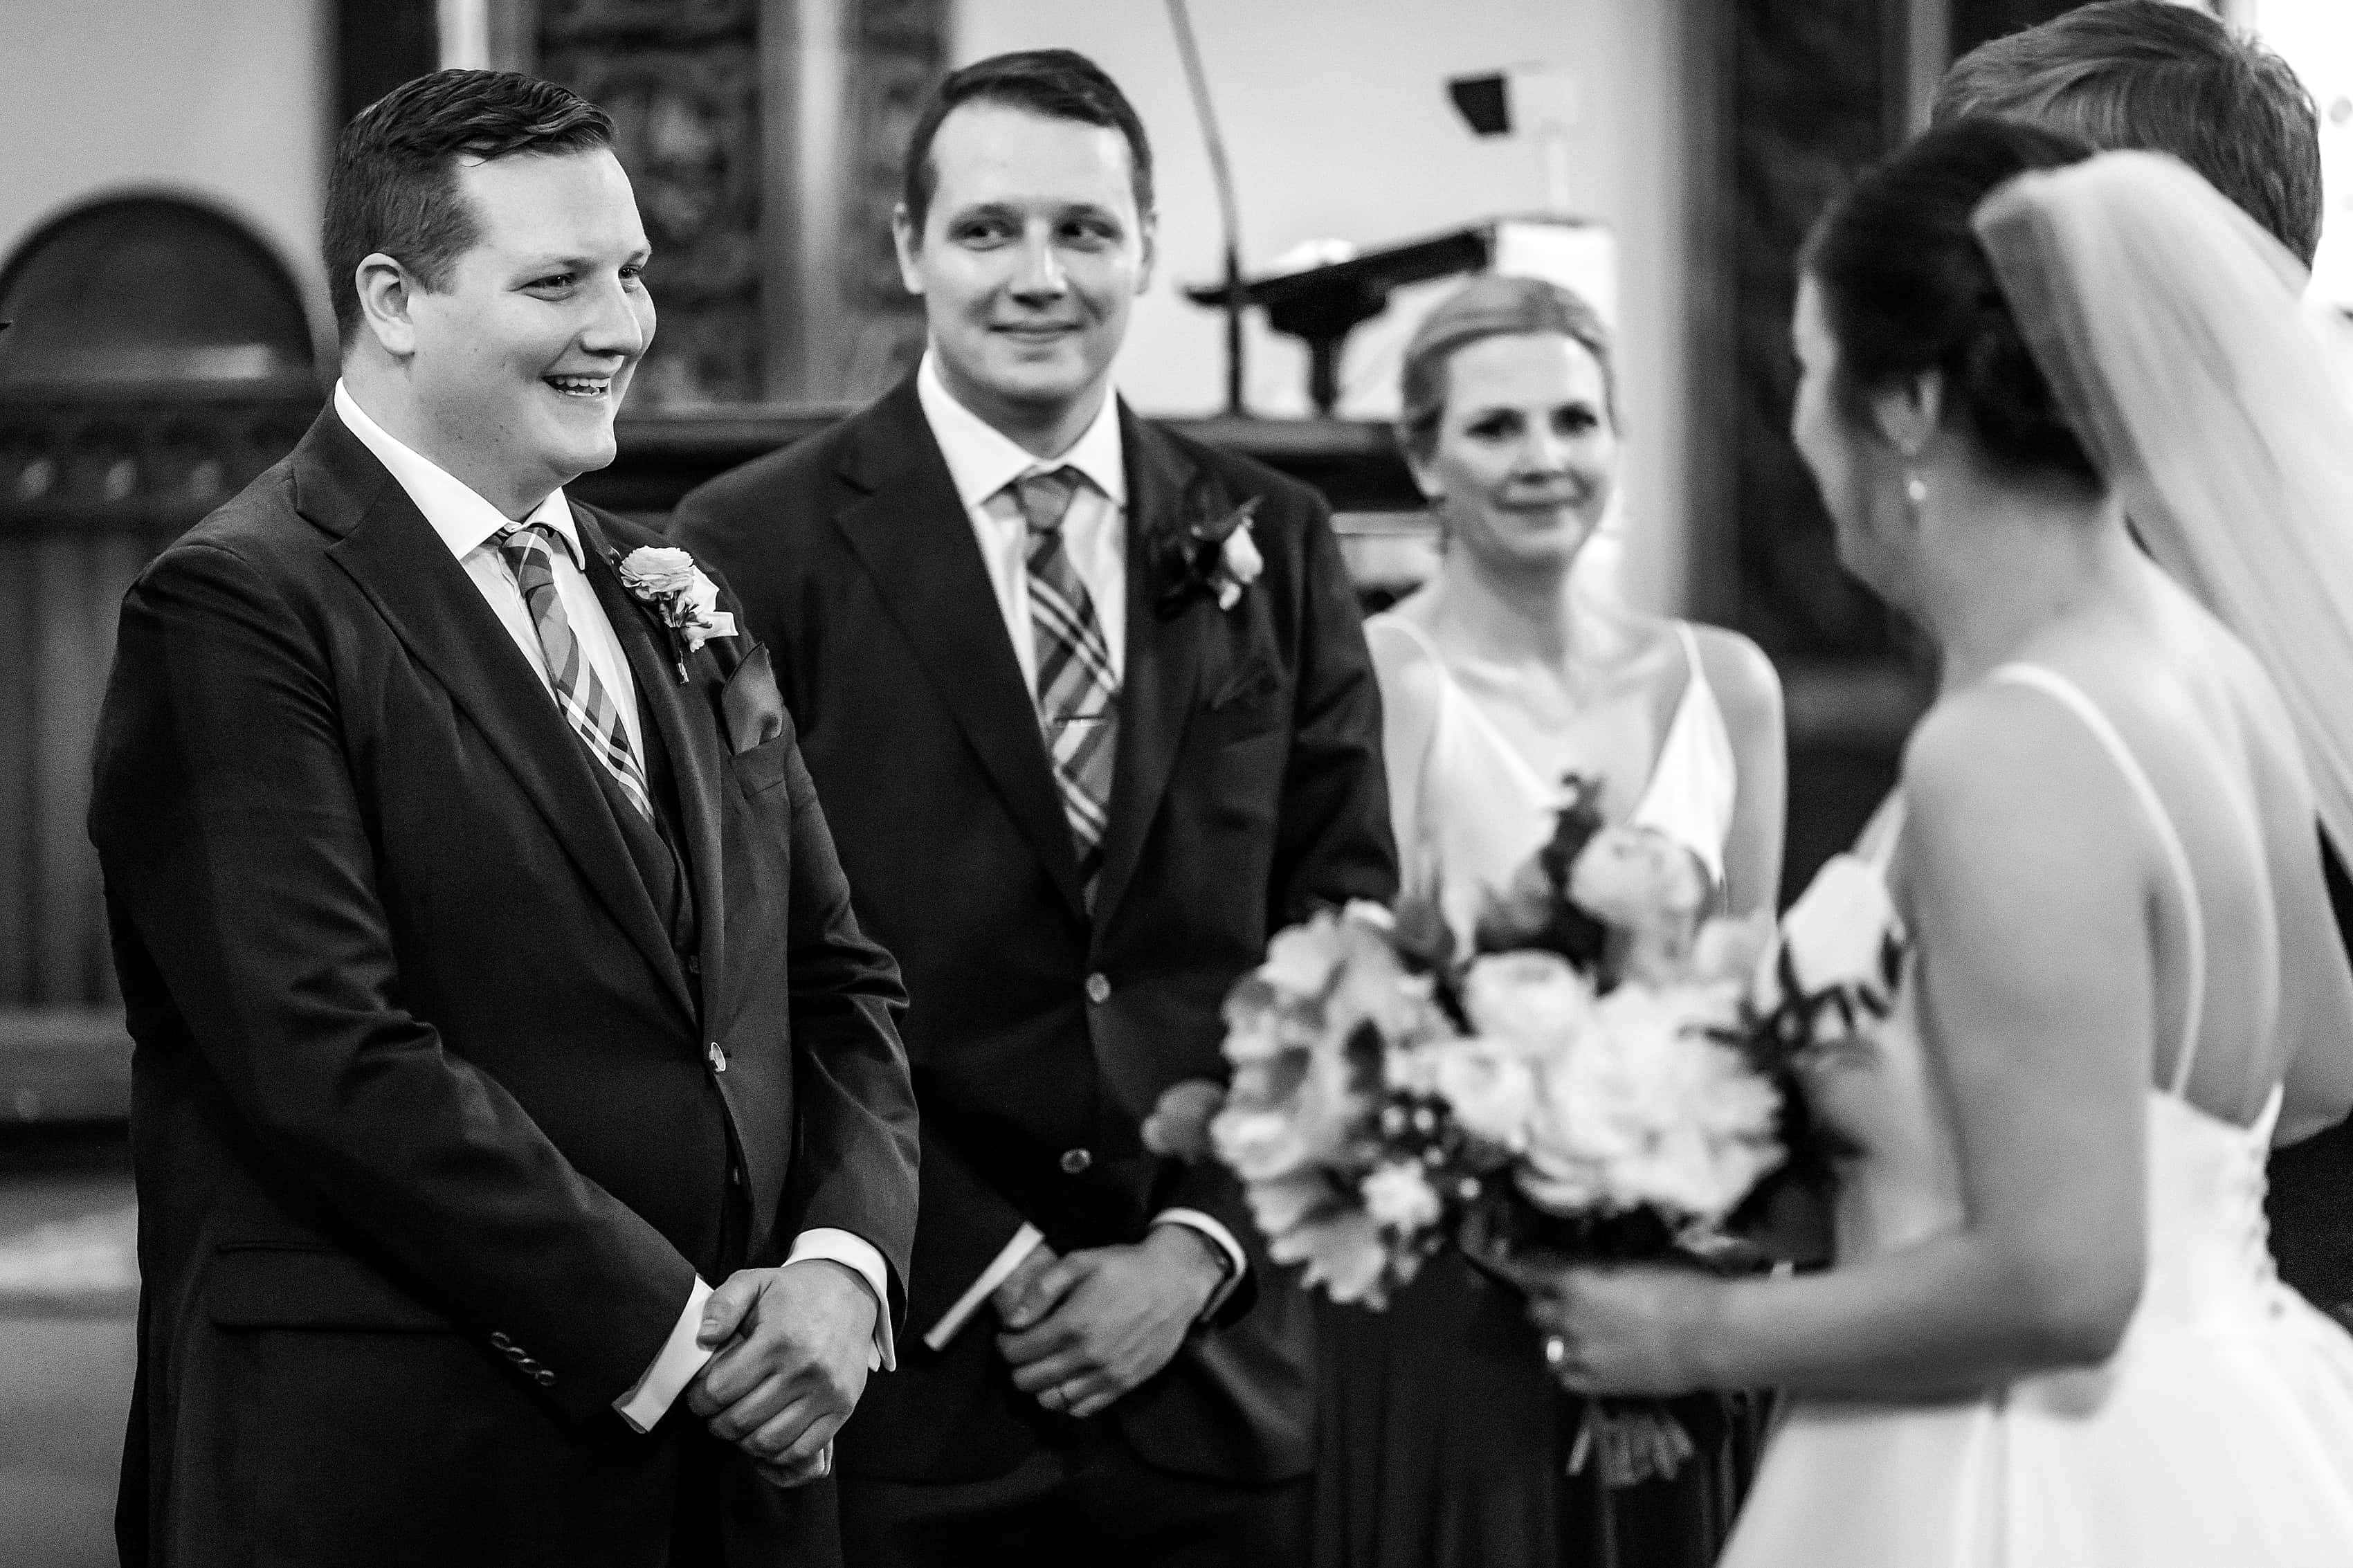 groom reacts to seeing bride during wedding ceremony at Church of our Savior